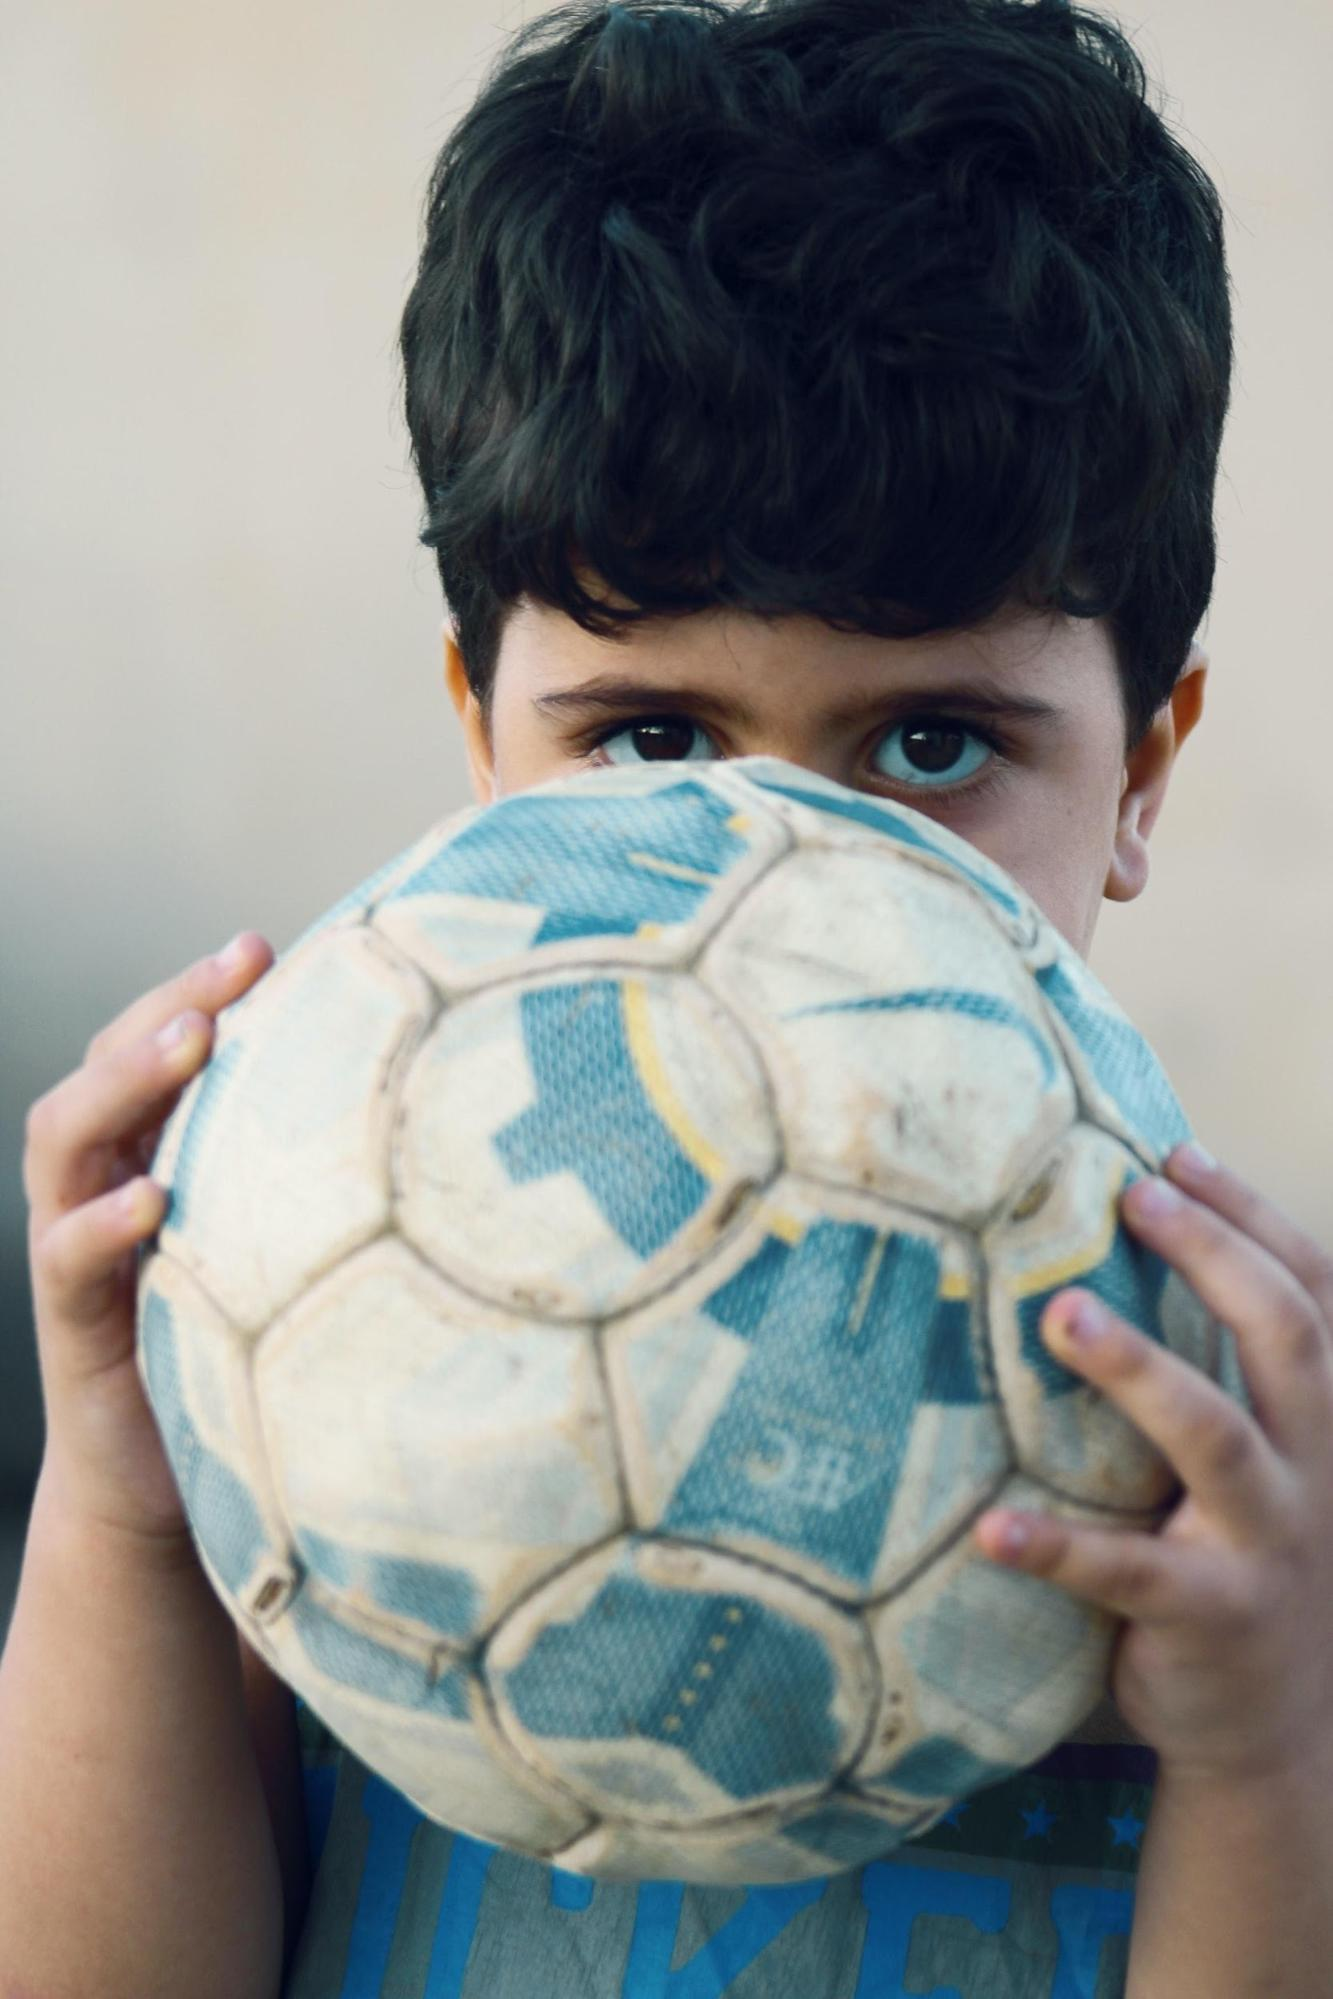 More Kids Experiencing Post Concussive Eye Problems